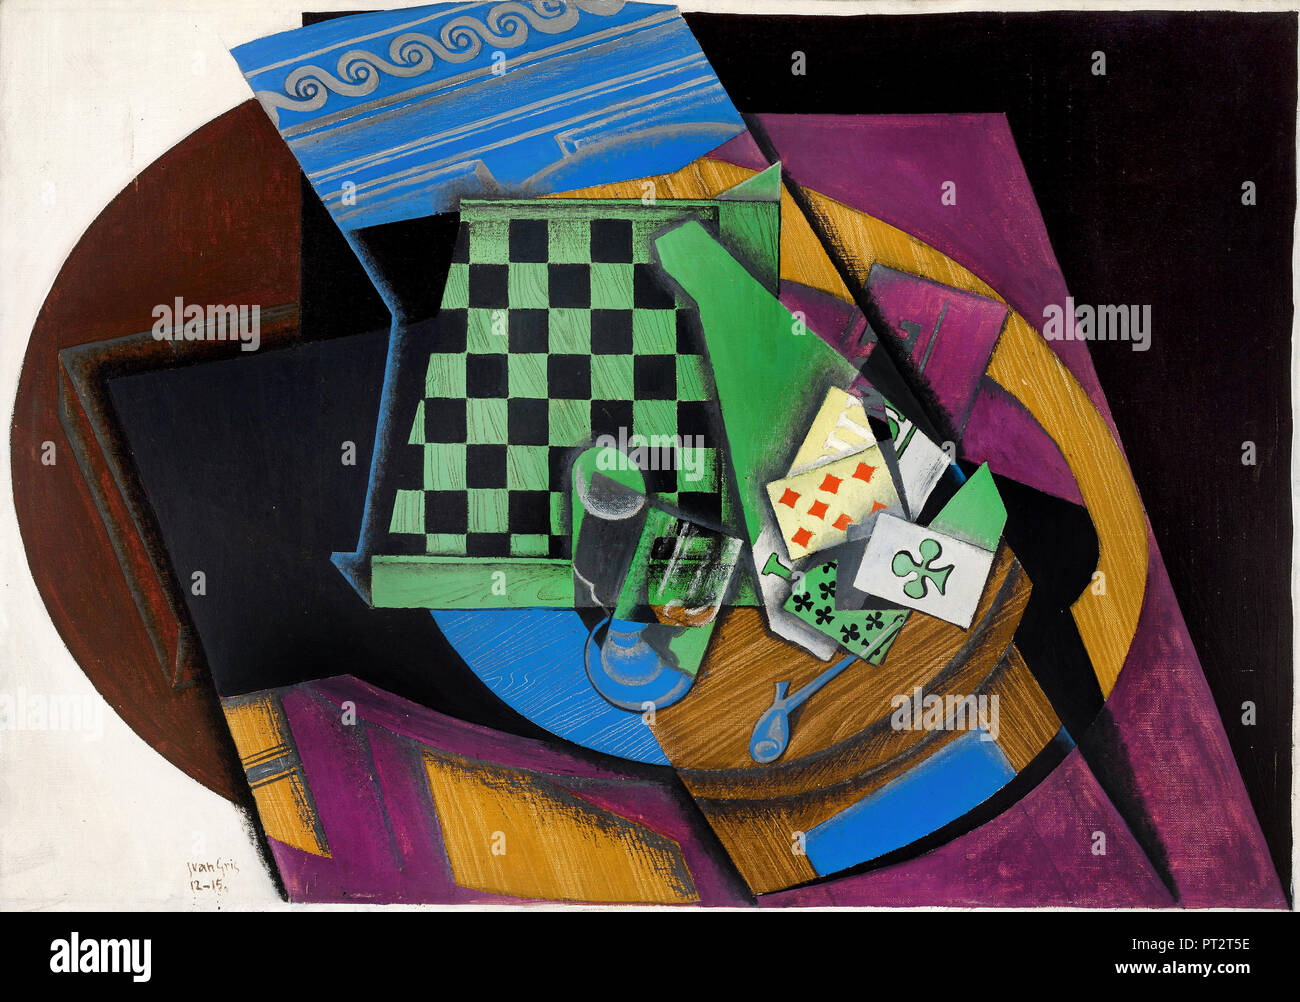 Juan Gris, Checkerboard and Playing Cards 1915 Oil on canvas, National Gallery of Australia. - Stock Image